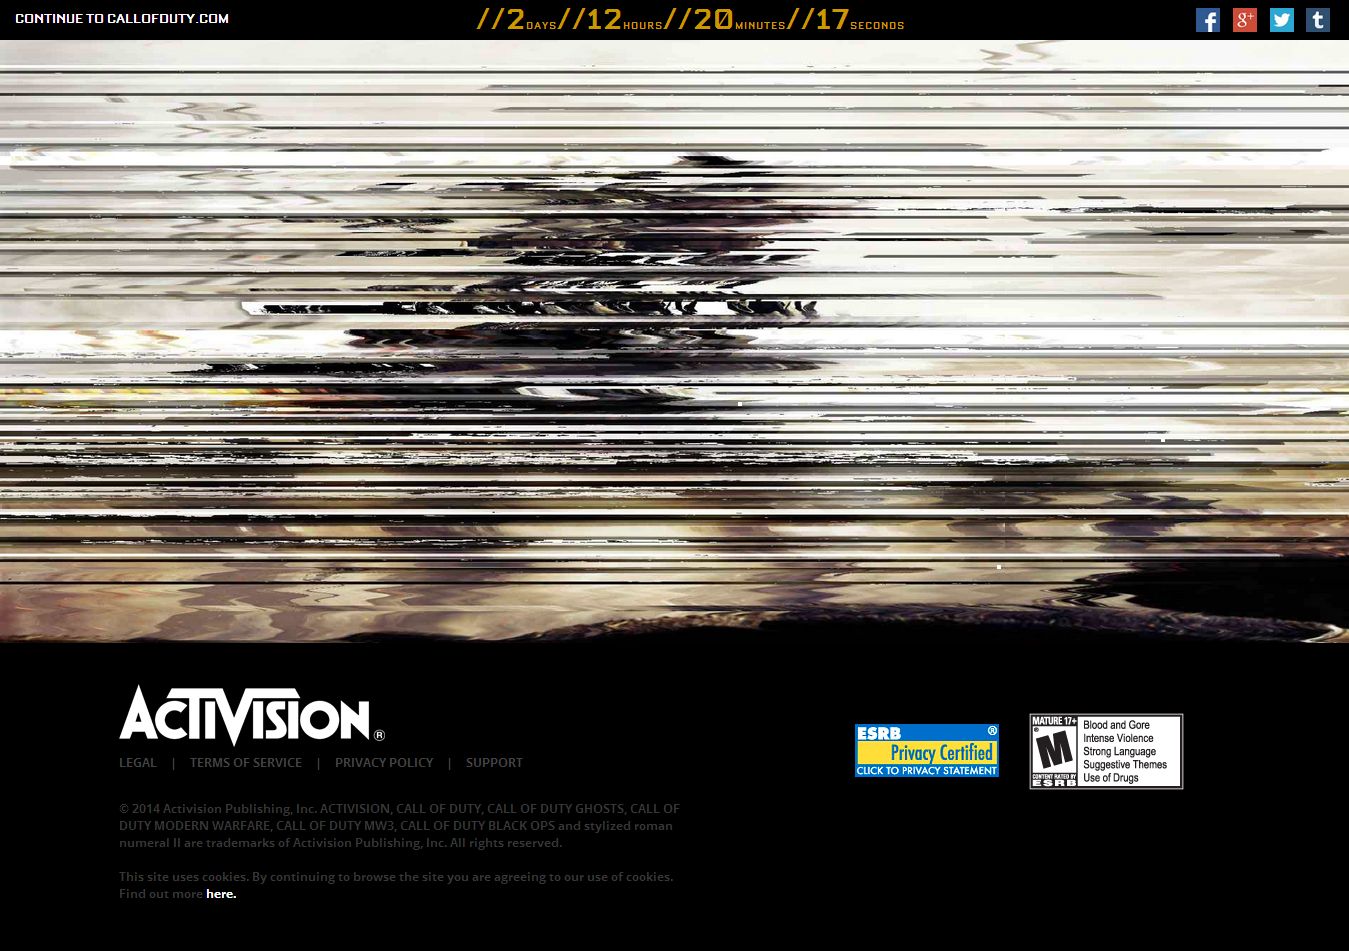 Get Ready for a New Era of Call of Duty® e1398961142914 - New Call of Duty game reveal dated for 4th May by Activison